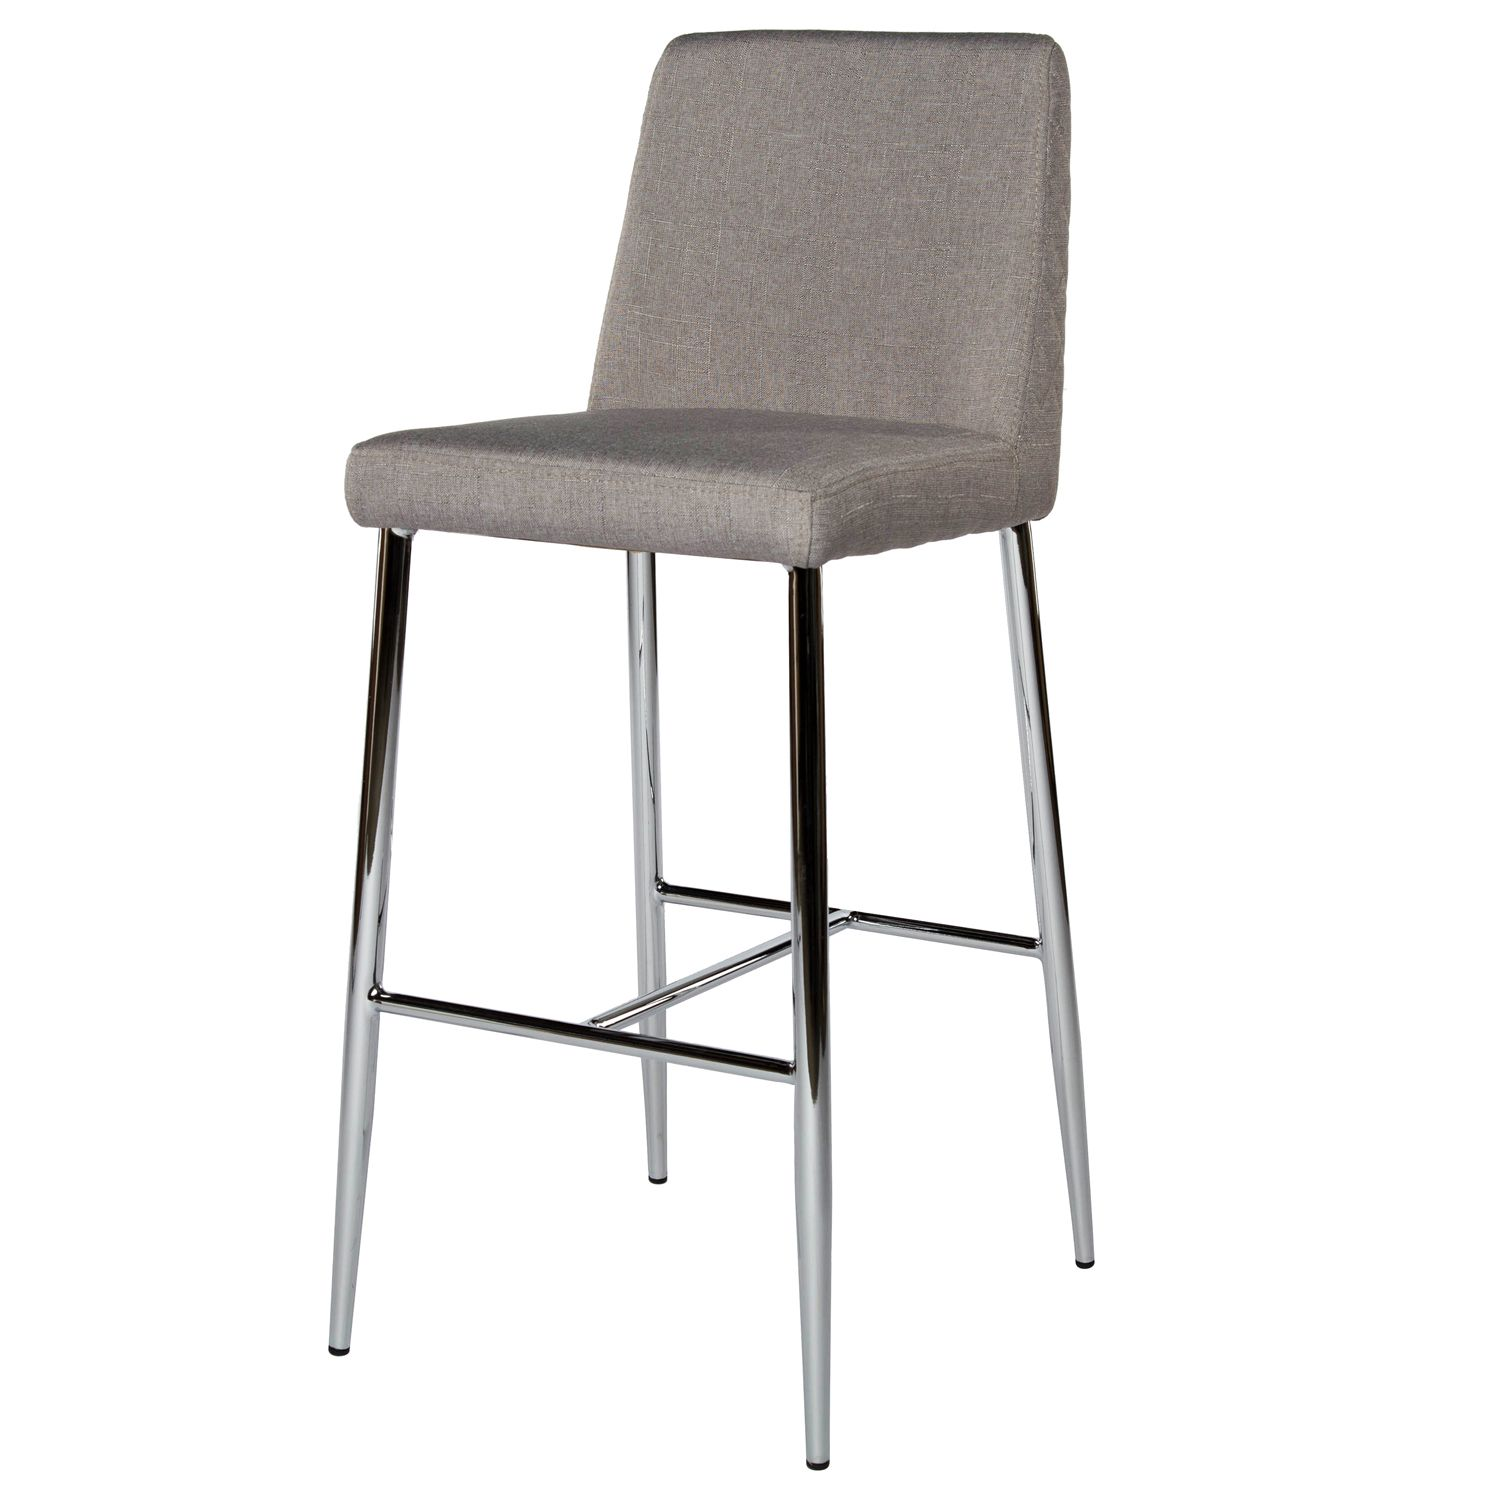 Light Grey Fabric Covered Counter Height Bar Stool With Quilted Back Design Taper Chrome Metal Legs Non Swiv Modern Counter Stools Counter Stools Stool